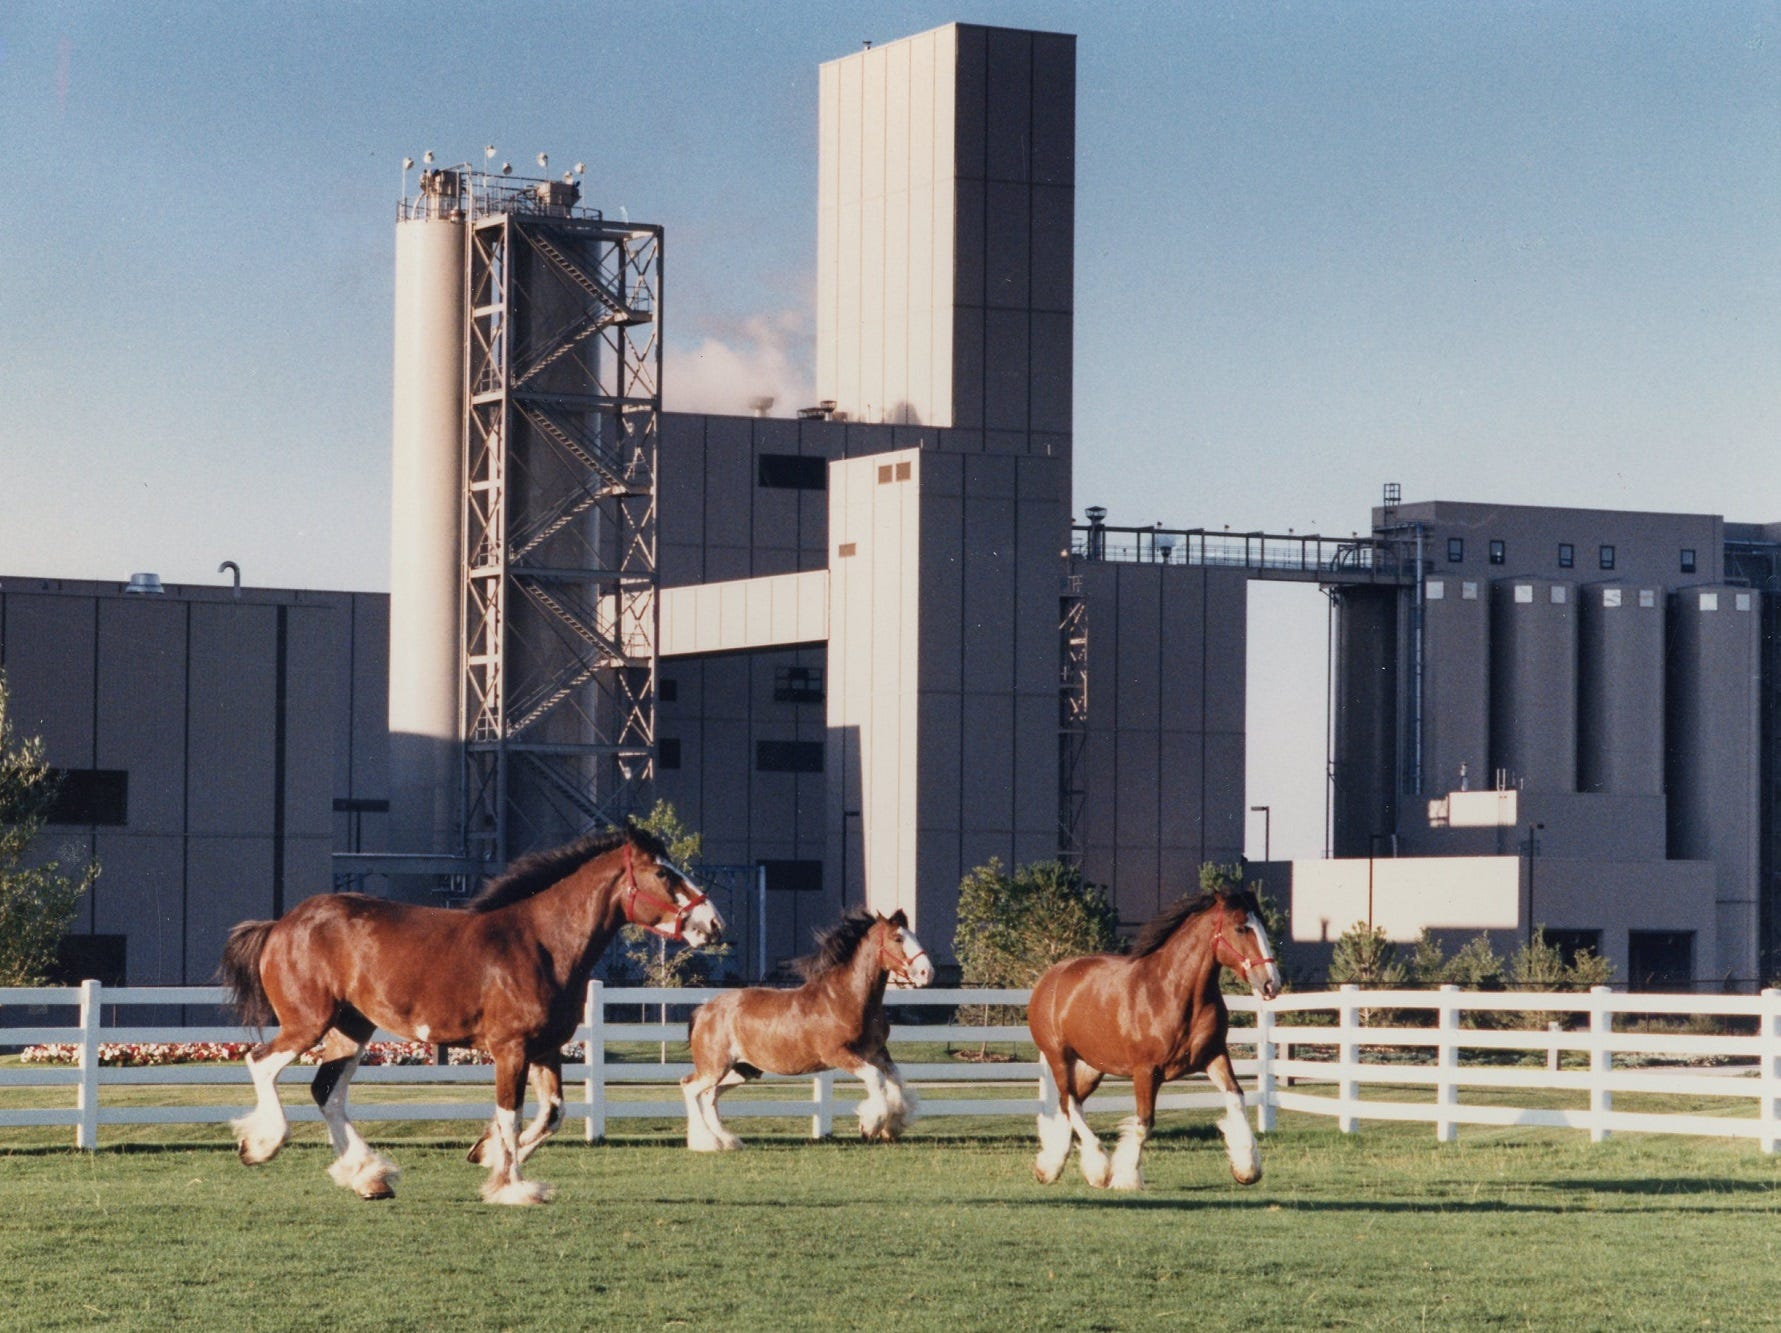 Magnum, Dewey and Robby frolic inside the paddock of Fort Collins' Anheuser-Busch in September 1990.